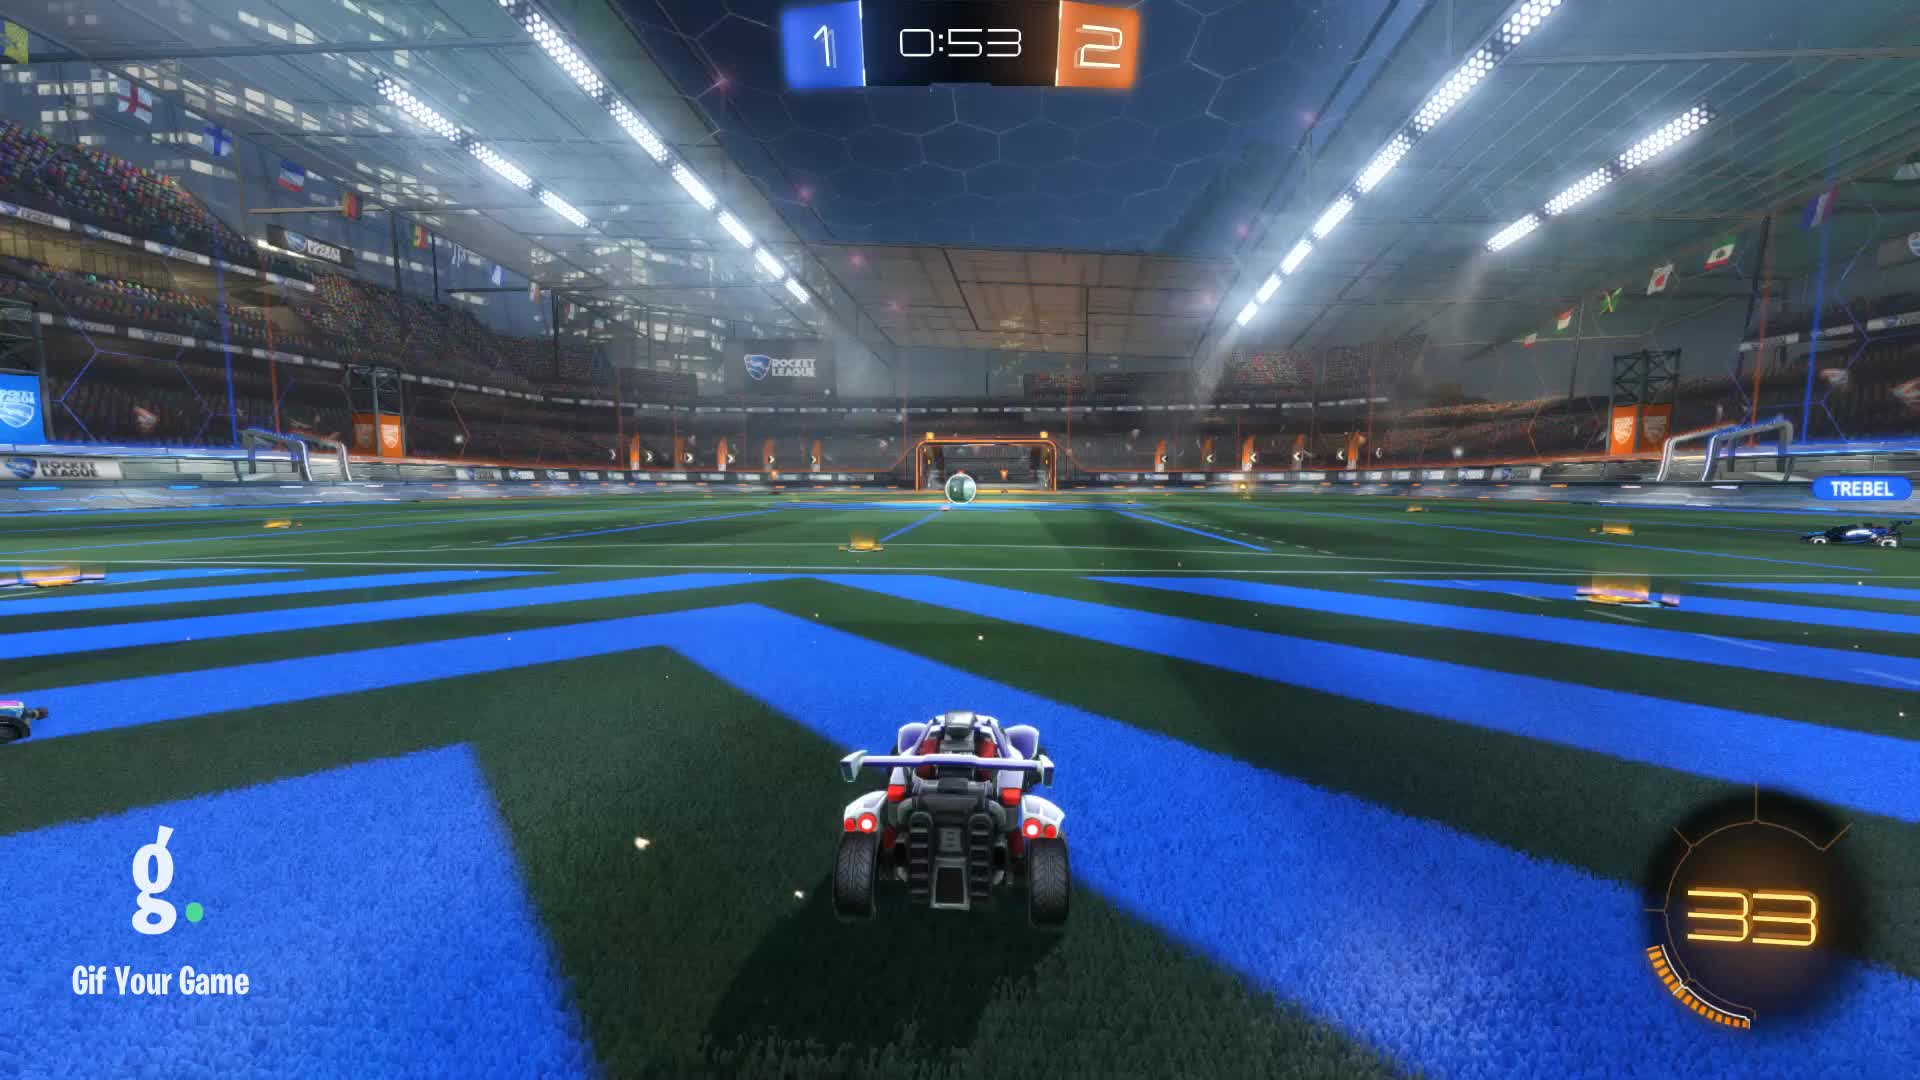 Gif Your Game, GifYourGame, Goal, Paps, Rocket League, RocketLeague, Goal 4: Paps GIFs